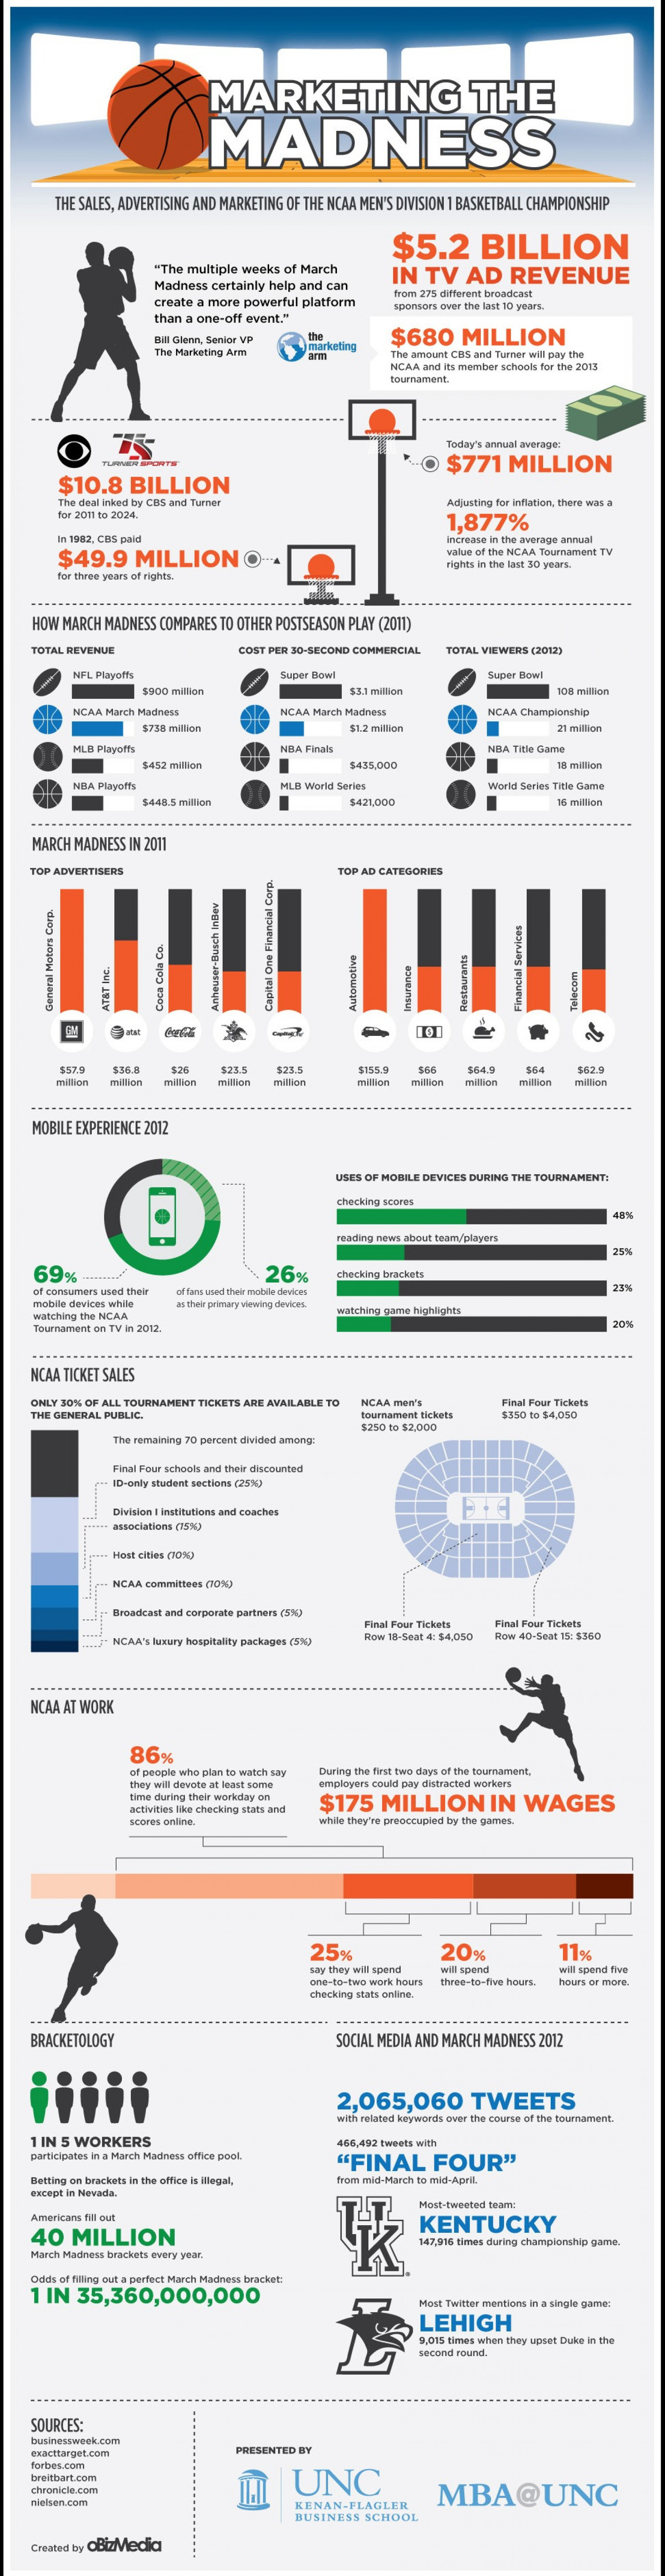 Marketing the Madness Infographic